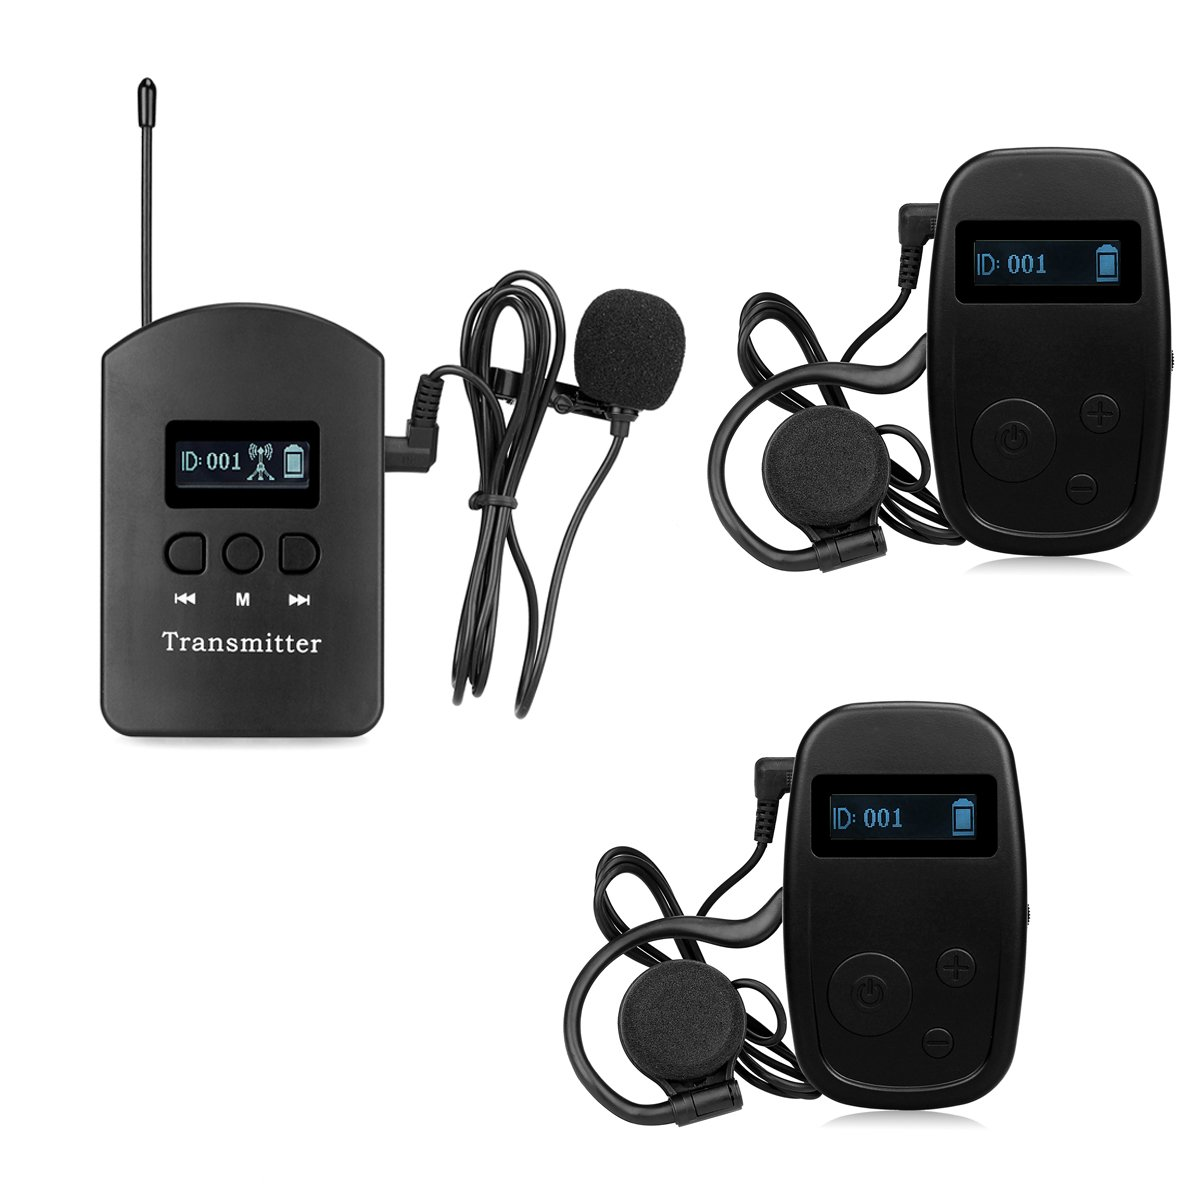 Retekess ATG-3802 Professional Wireless Tour Guide System Simultaneous Interpretation System for Church Listening Teaching Traveling Museum Conference Interpretation(1 Transmitter and 2 Receivers)